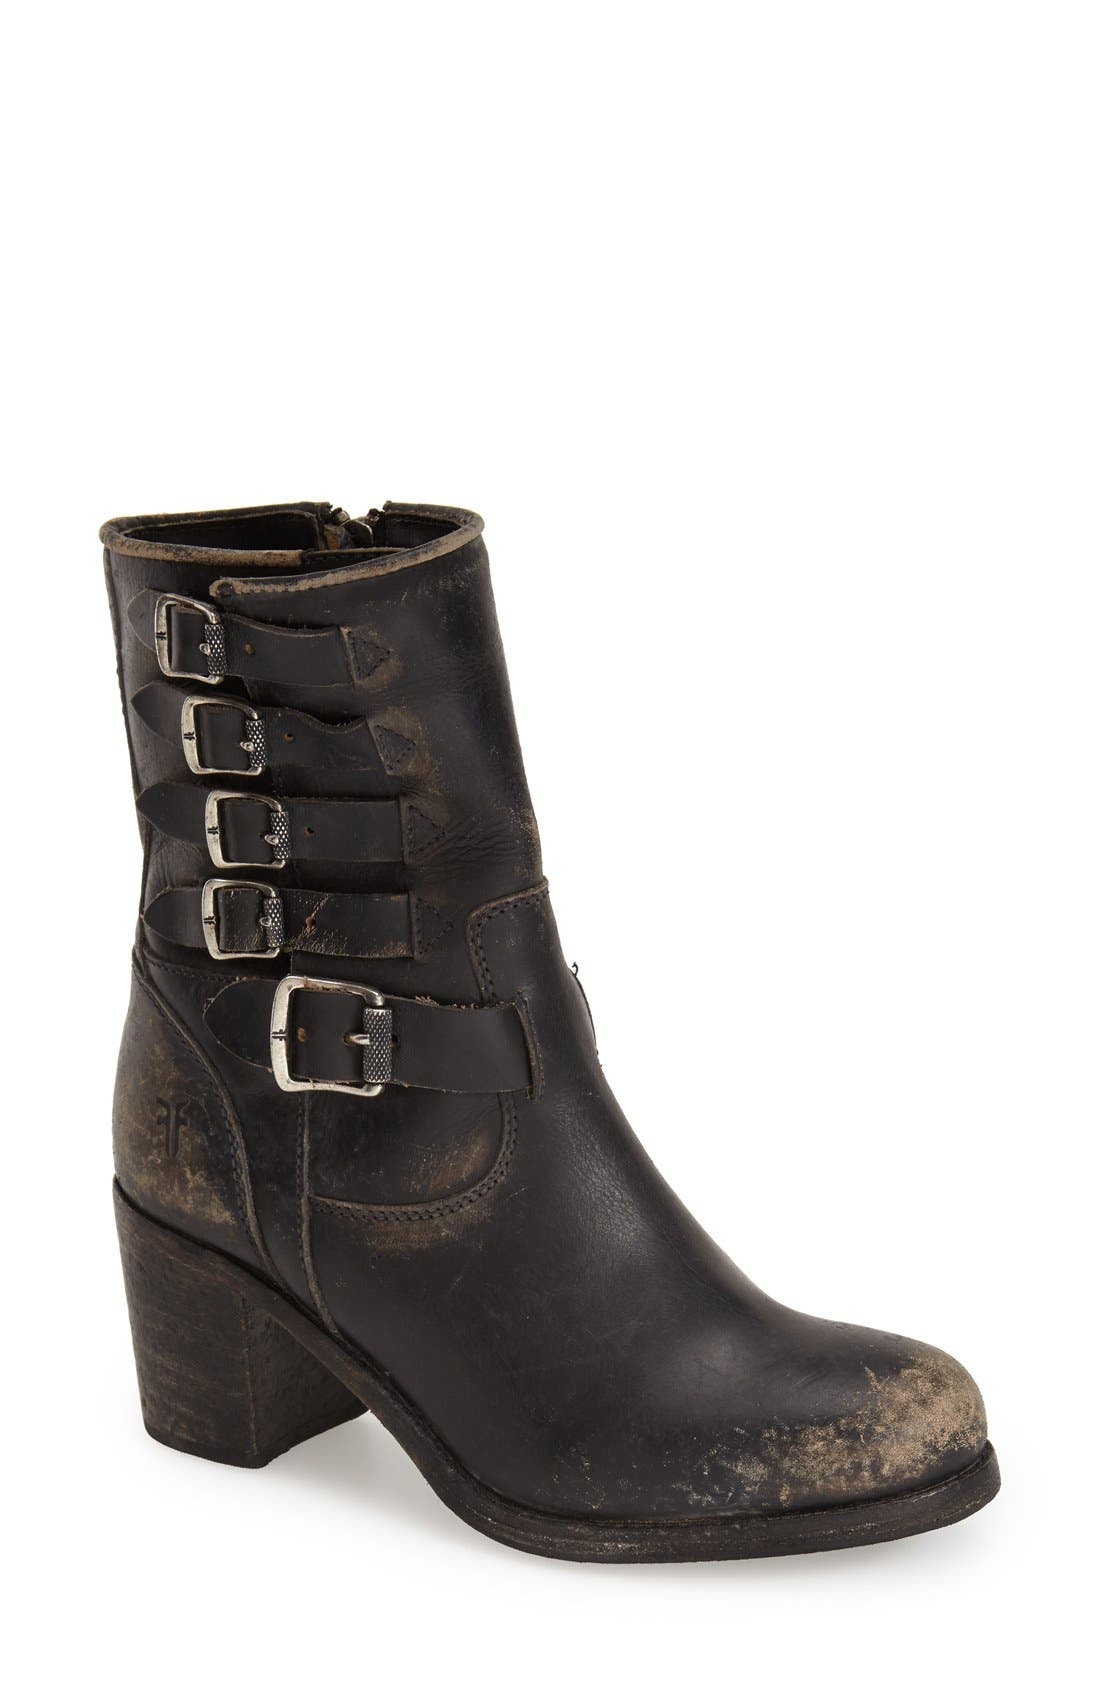 'Kelly' Belted Short Boot,                             Main thumbnail 1, color,                             001